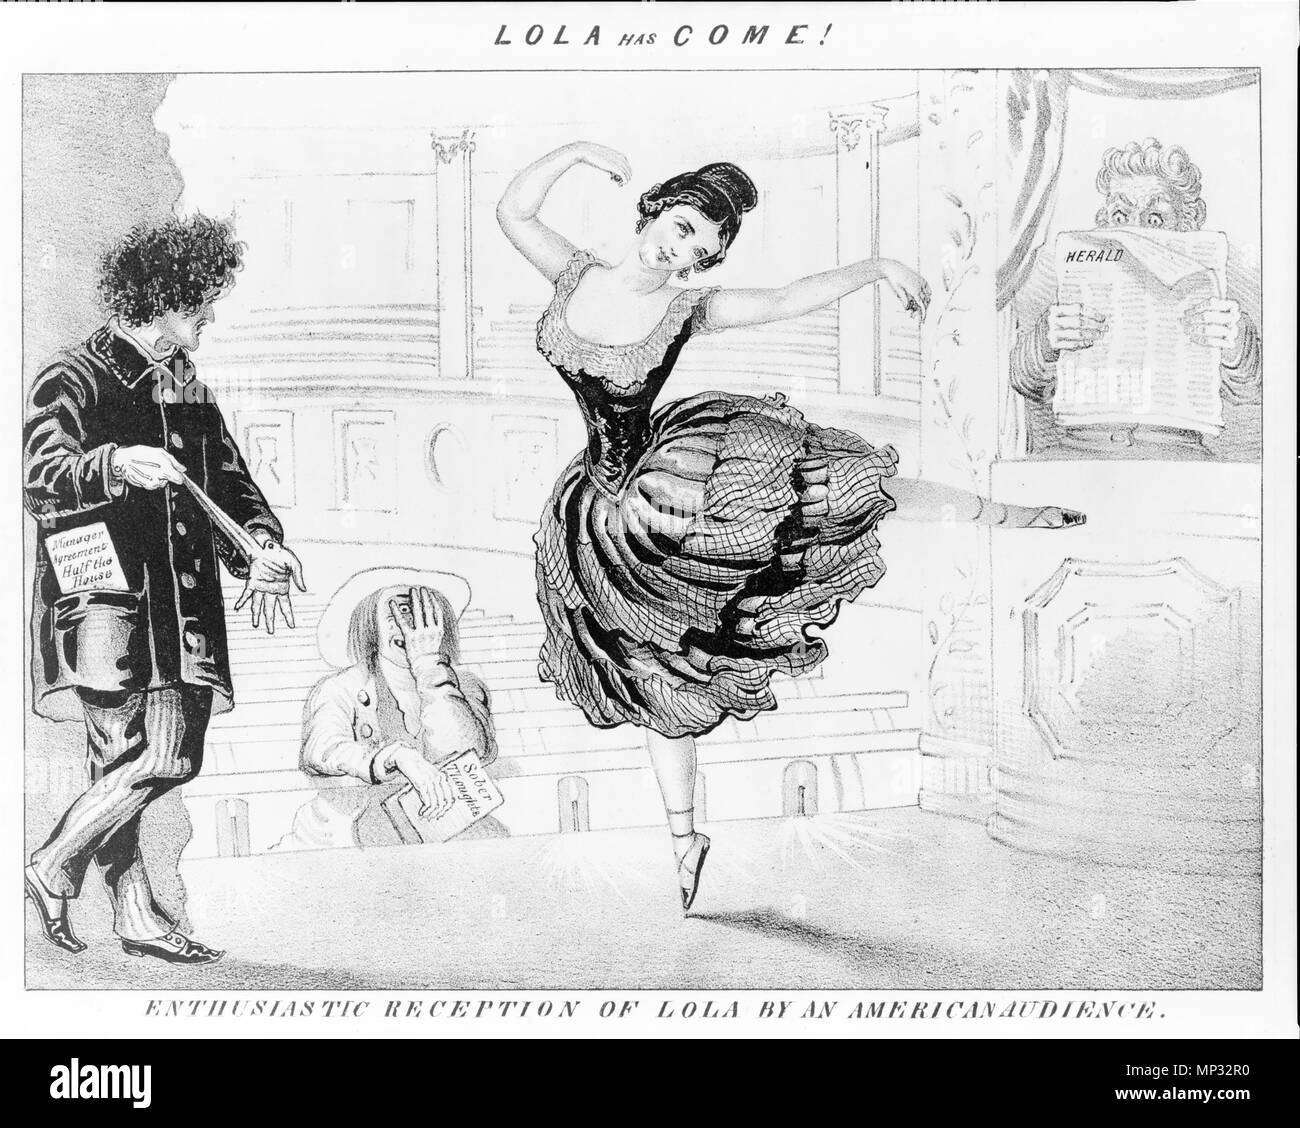 . Lola has come! Enthusiastic reception of Lola by American audience. ca.1852? By D.C. Johnston. Cartoon of Lola Montez. circa 1852.   817 LolaHasCome ca1852 byDClaypooleJohnston LibraryOfCongress - Stock Image